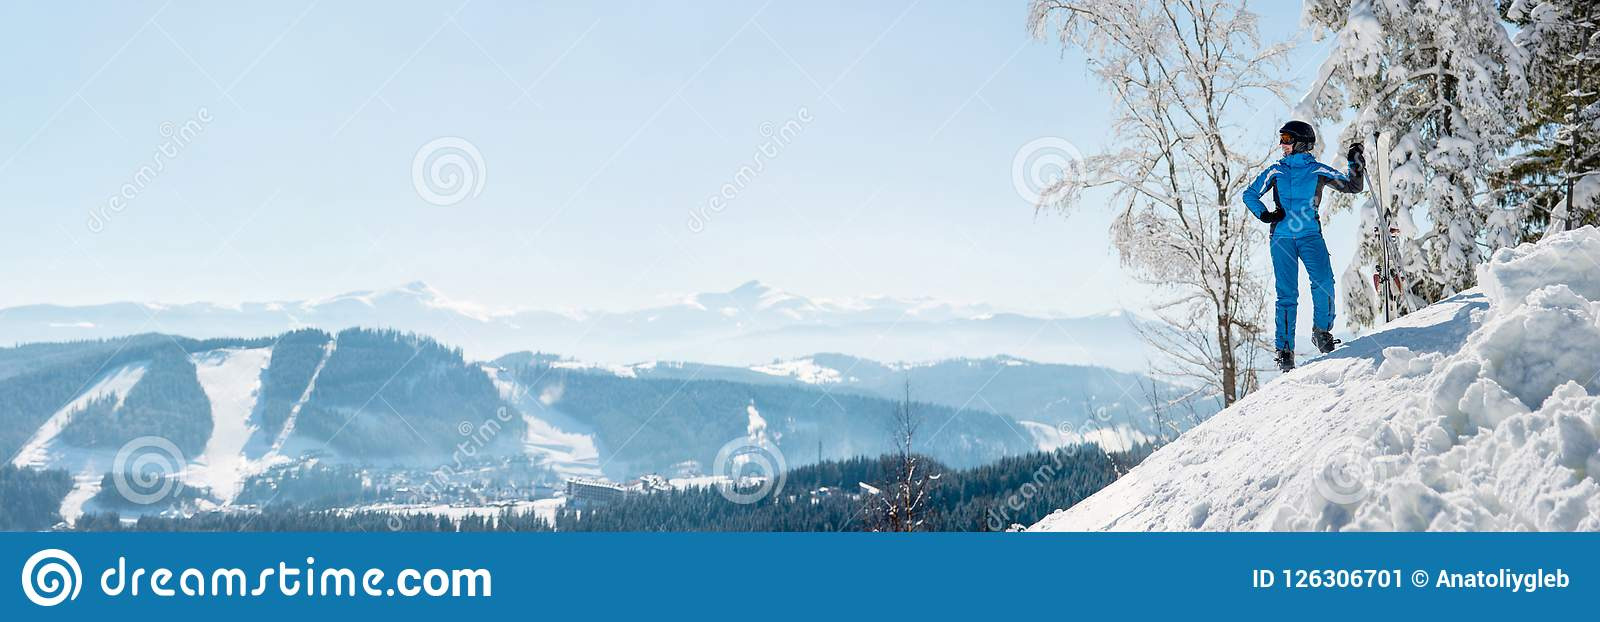 Panoramic shot of a female skier resting on top of the mountain observing nature at ski resort